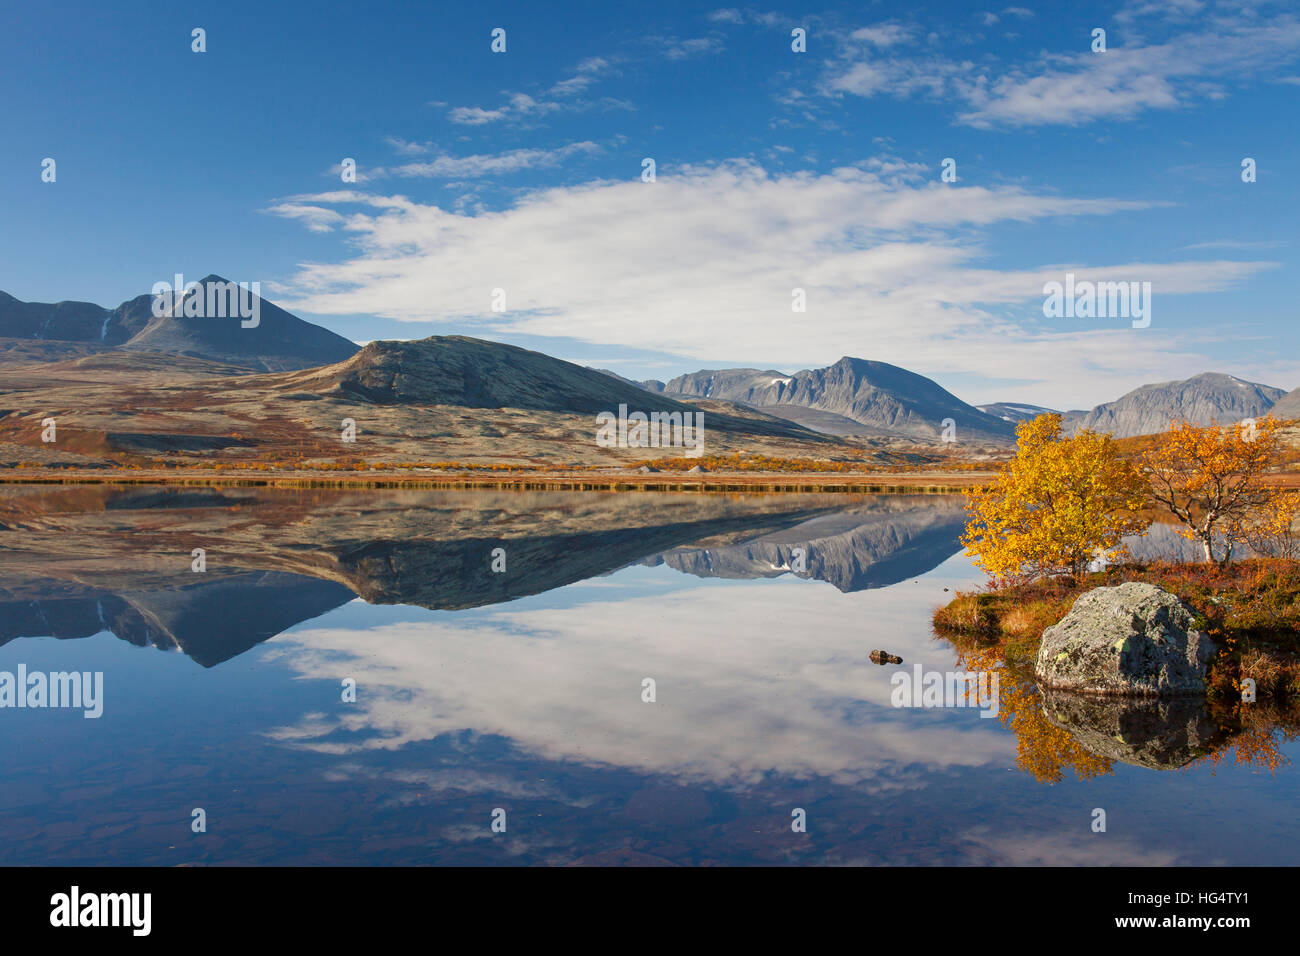 Birch trees showing autumn colours along lake, Døråldalen in Rondane National Park, Oppland, Norway - Stock Image